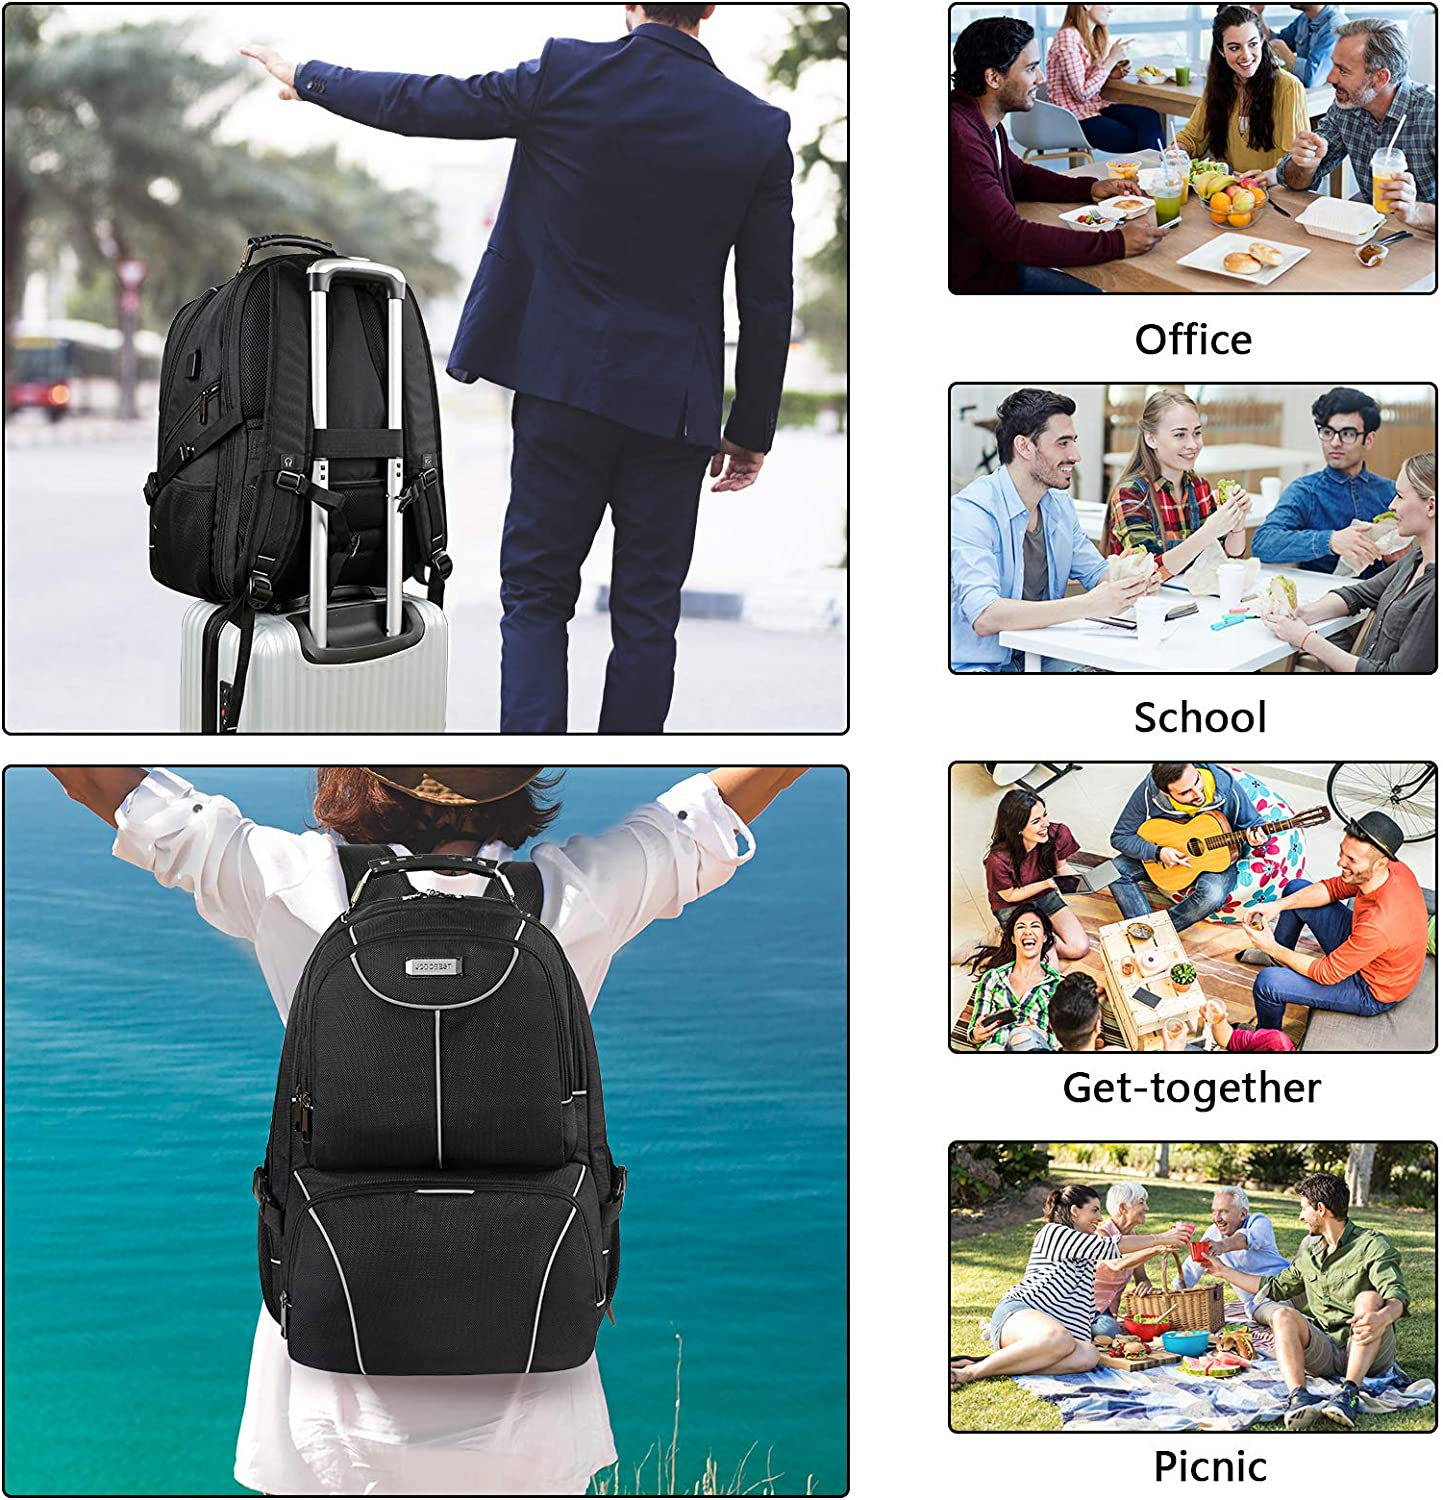 Extra Large Travel Laptop Backpack TSA Friendly RFID Durable Computer College School Bookbag with USB Port for Women Men Fits 17.3 Inch Laptop Lunch Bag Backpack Insulated Cooler Lunch Box Backpack